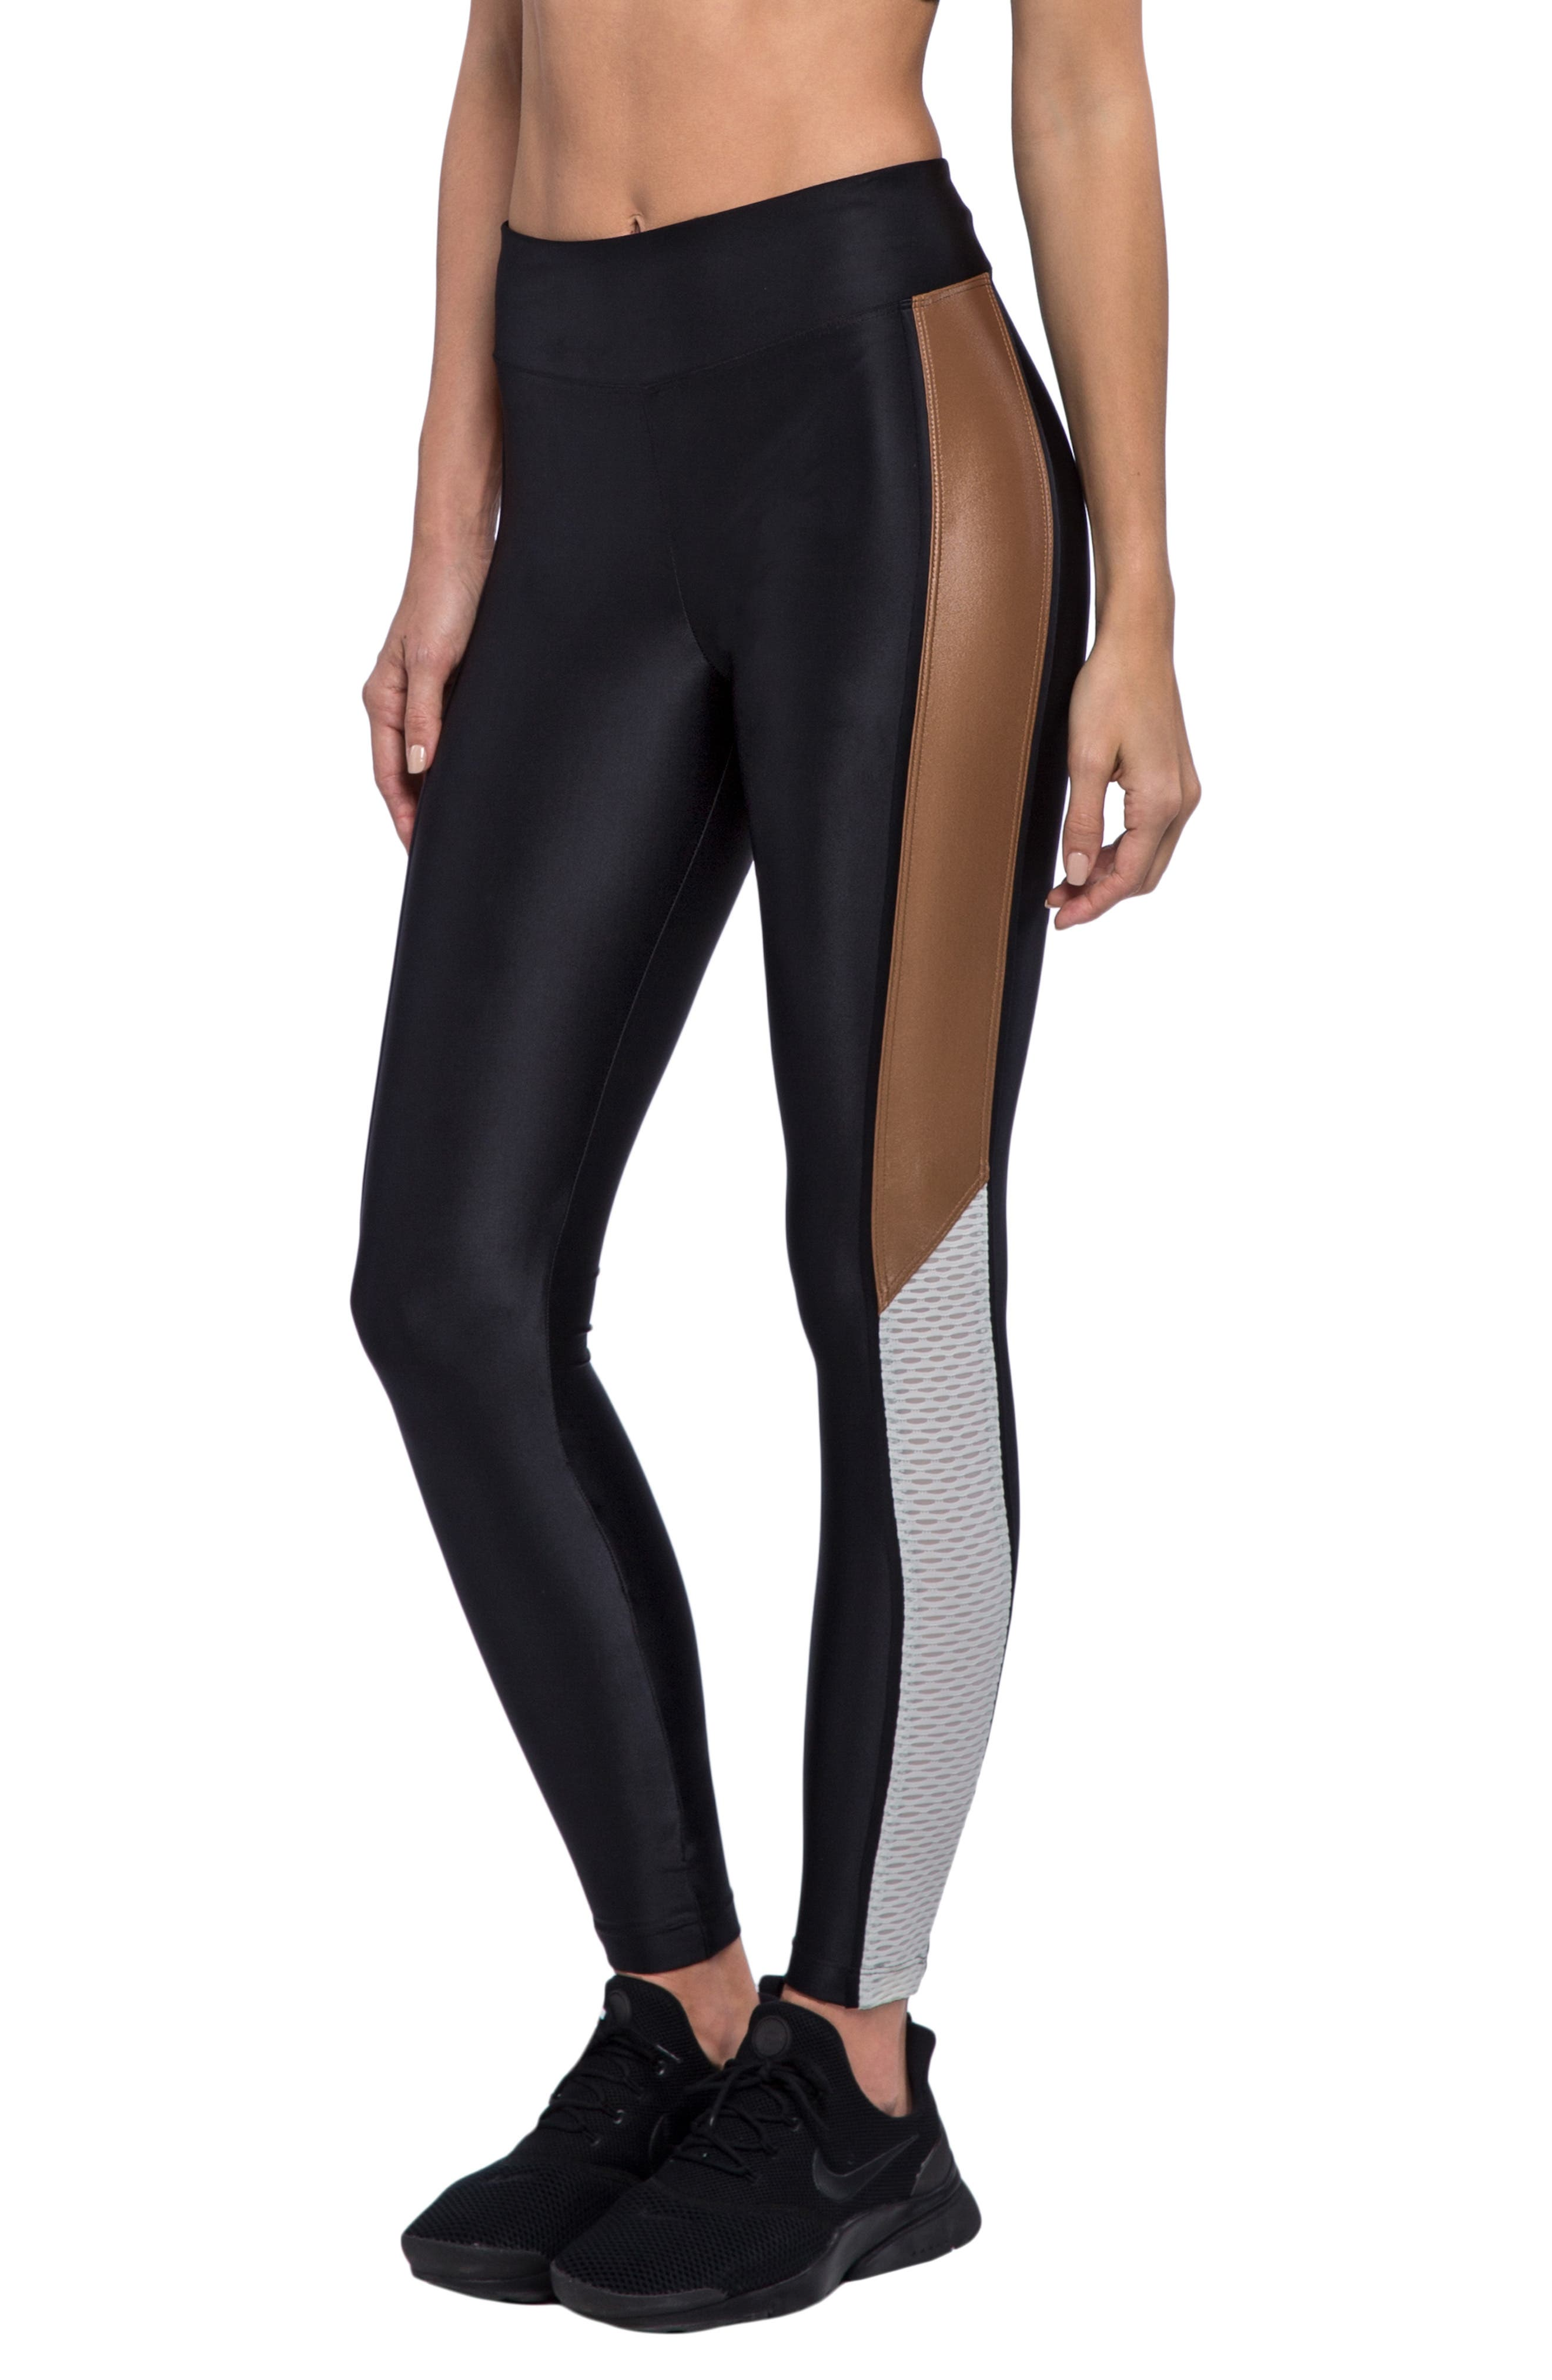 Serendipity Energy Leggings,                             Alternate thumbnail 3, color,                             BLACK/ TOFFEE/ EGRET